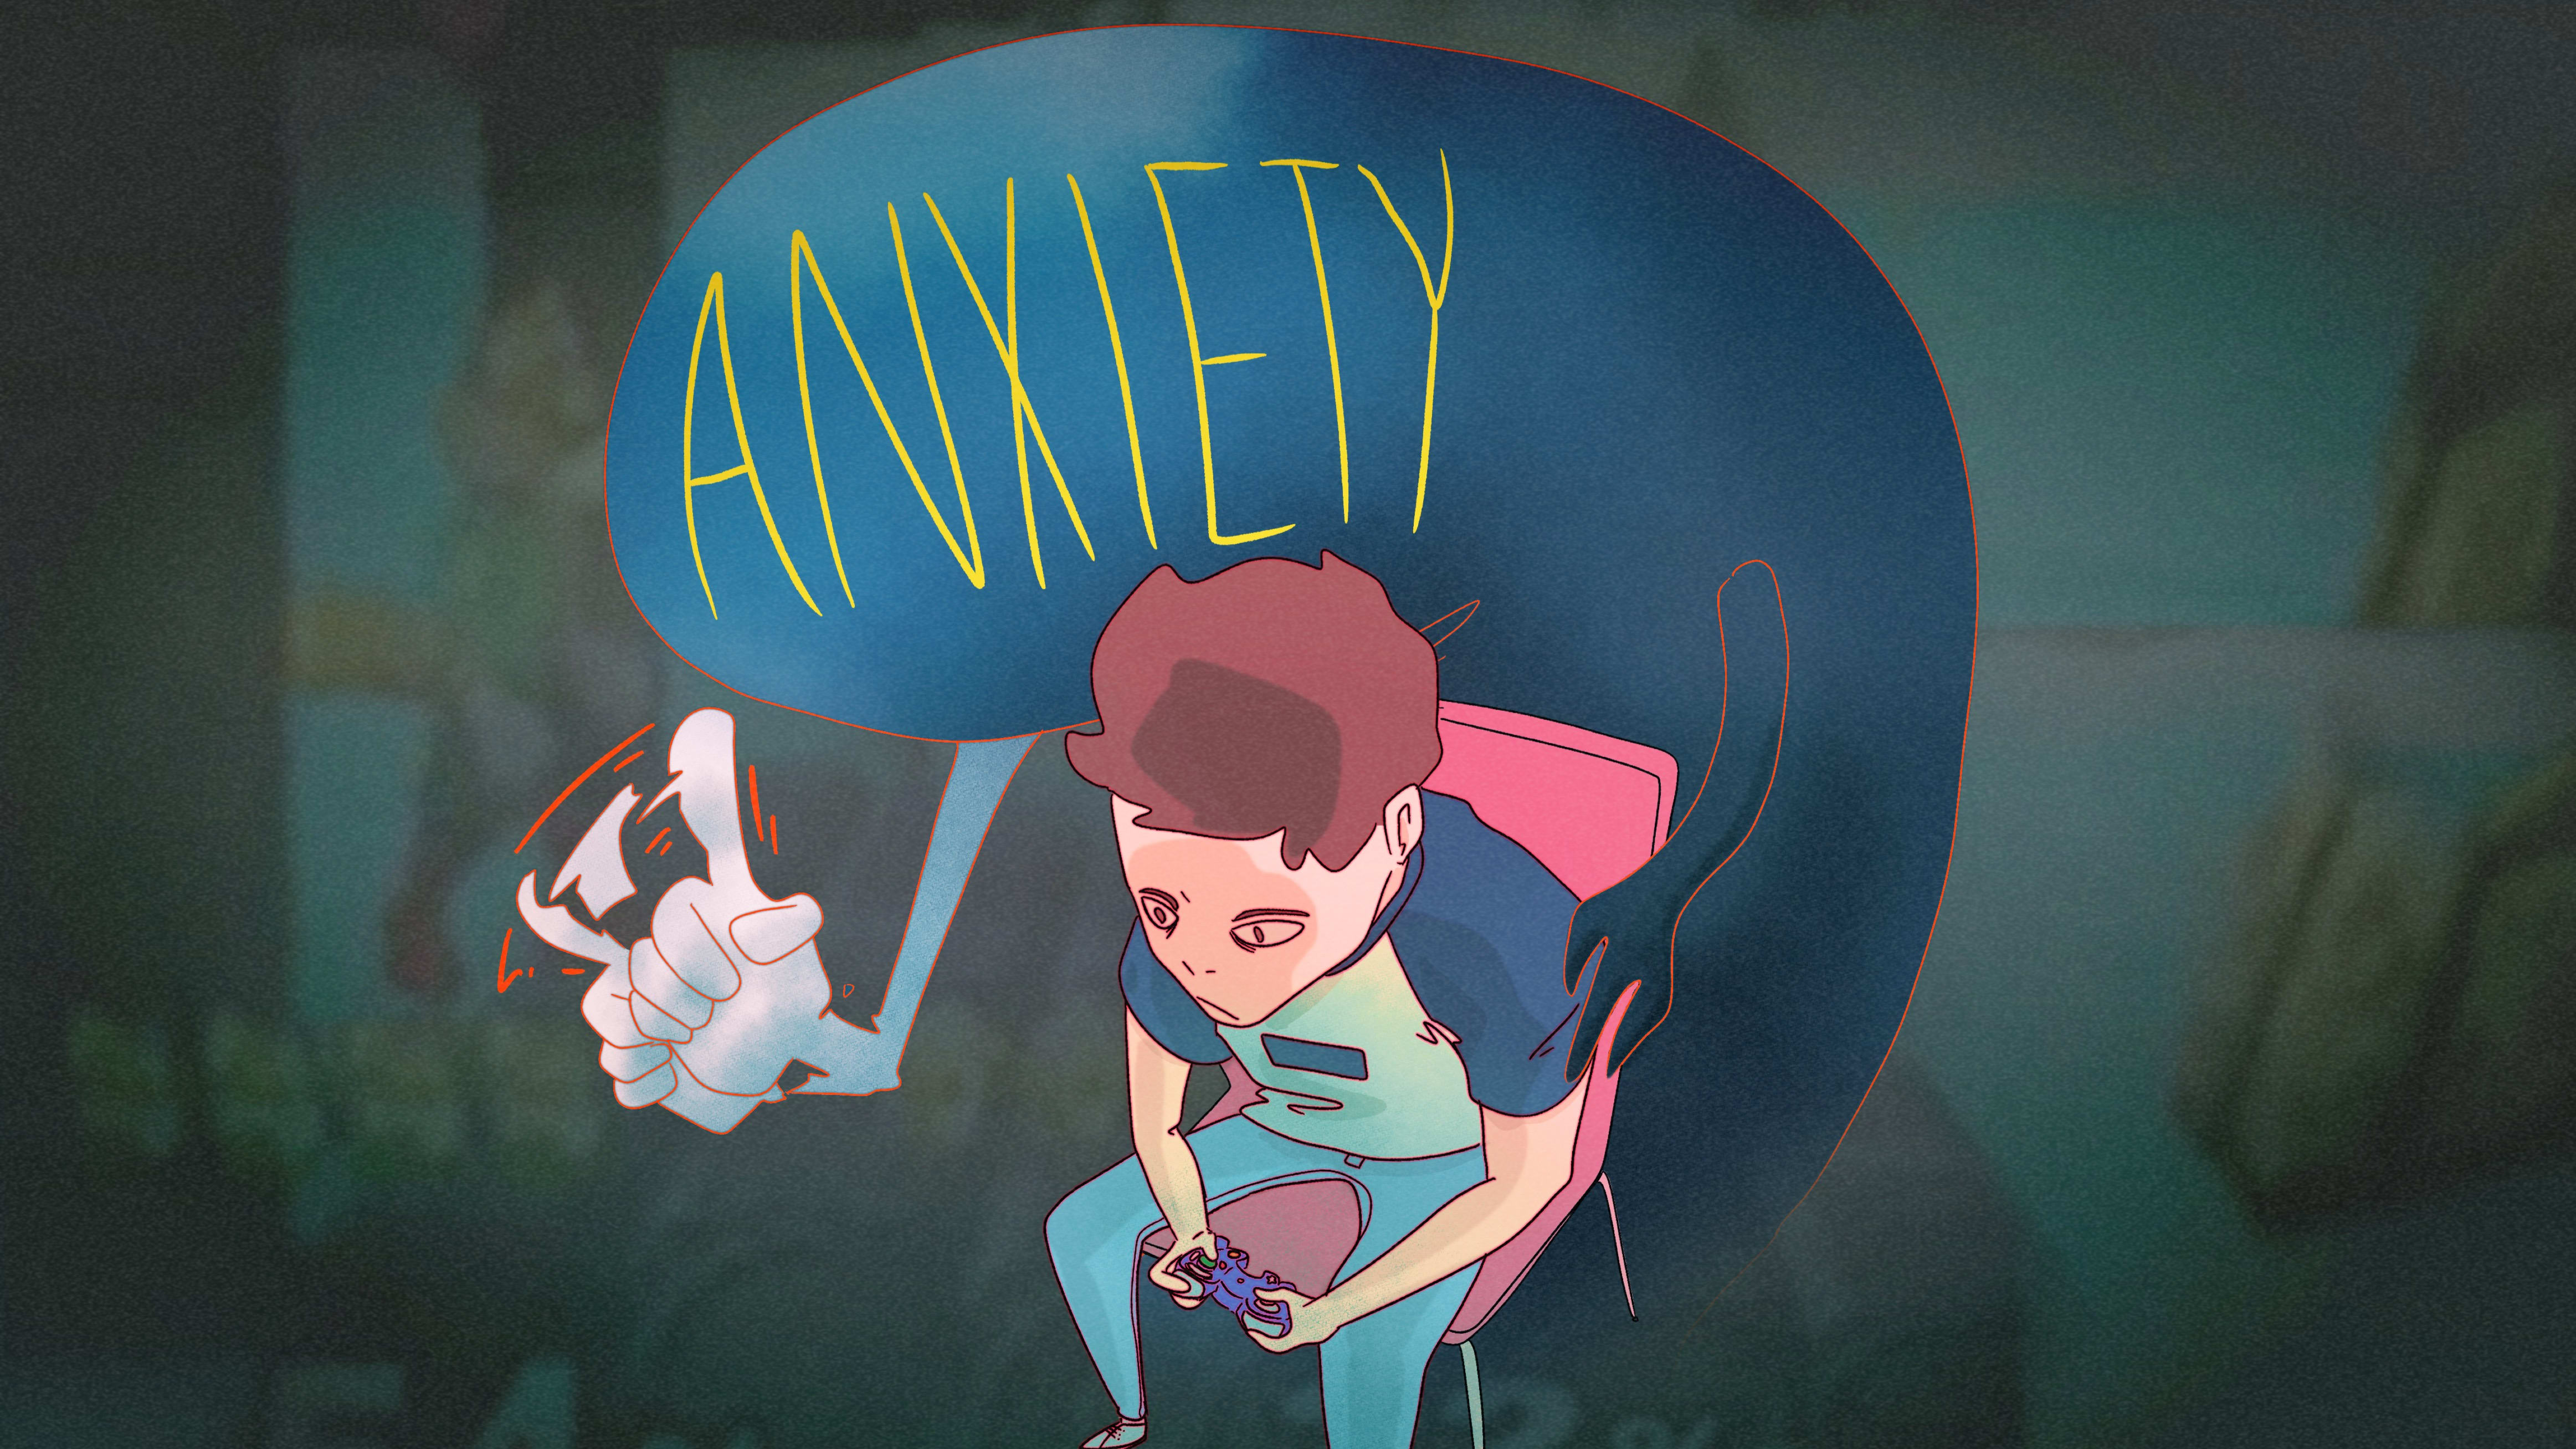 Esports Pros Often Deal with Anxiety, Depression in Public